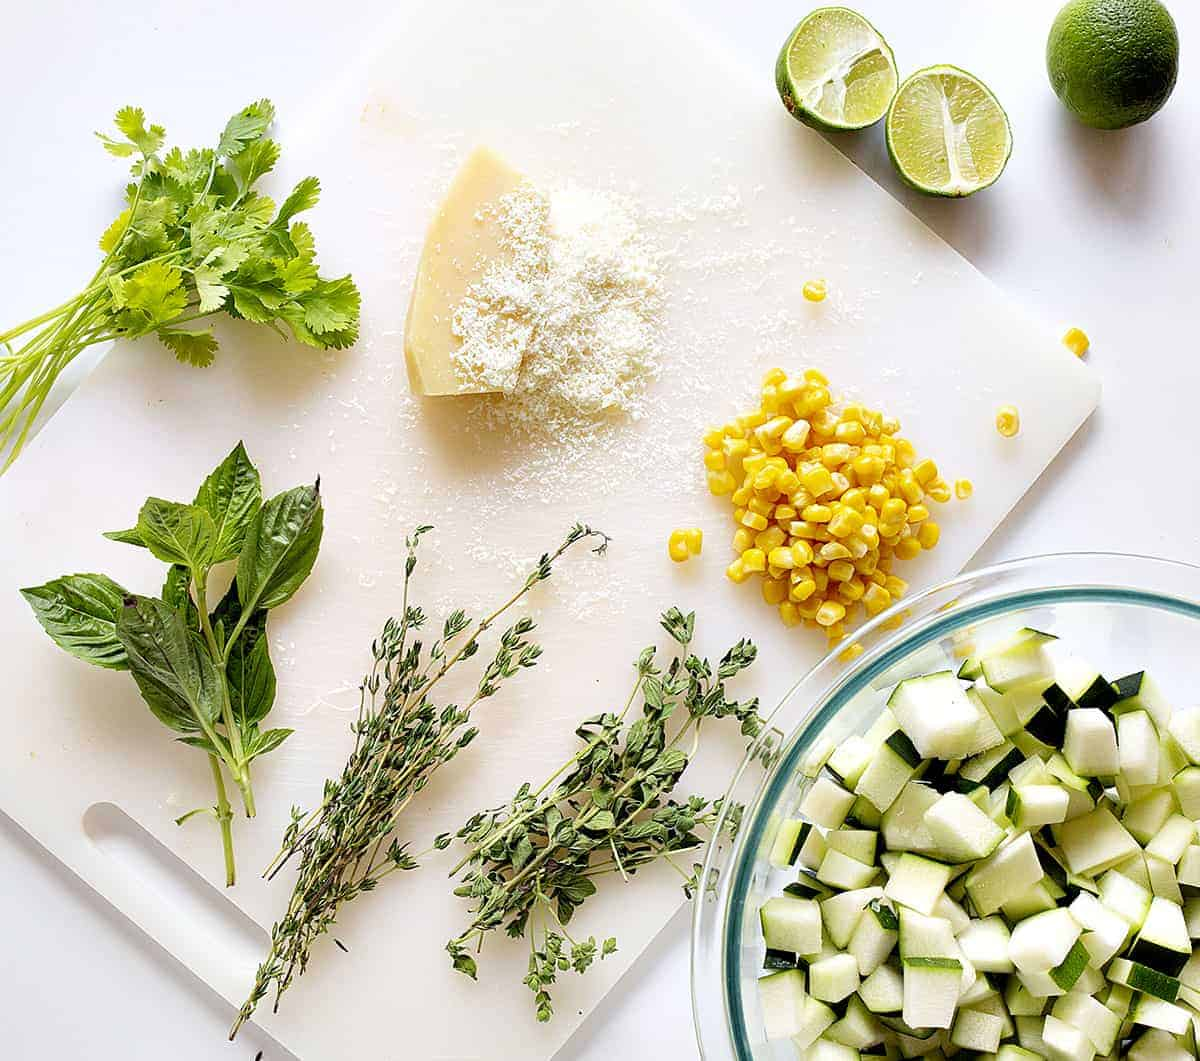 Ingredients for Parmesan Zucchini Corn